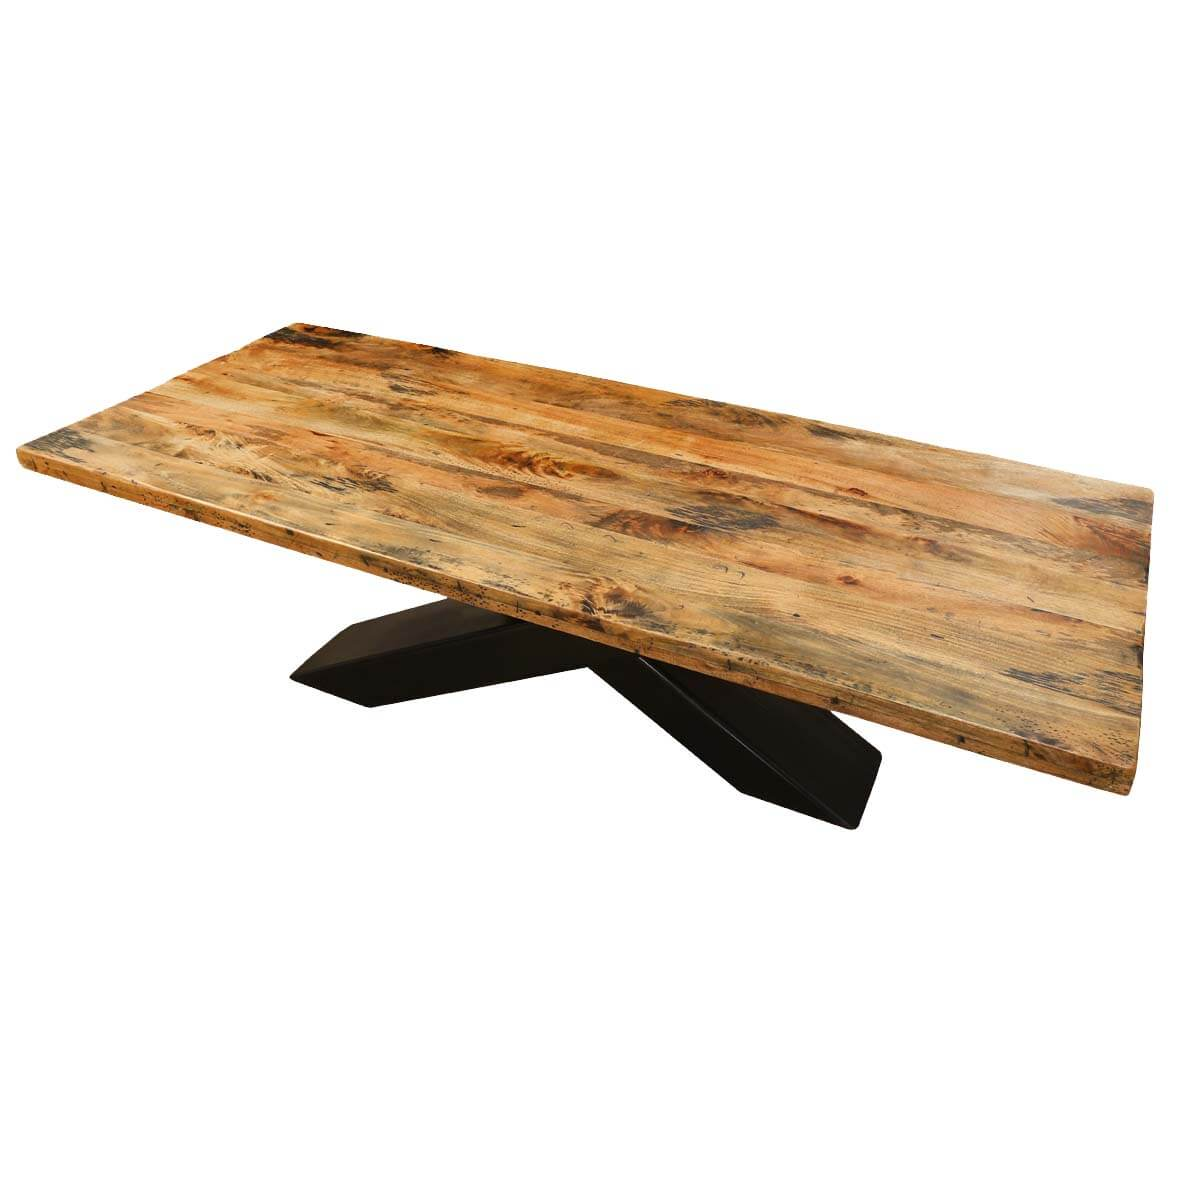 Elion 94 mango wood dining table with iron legs for Wood table iron legs